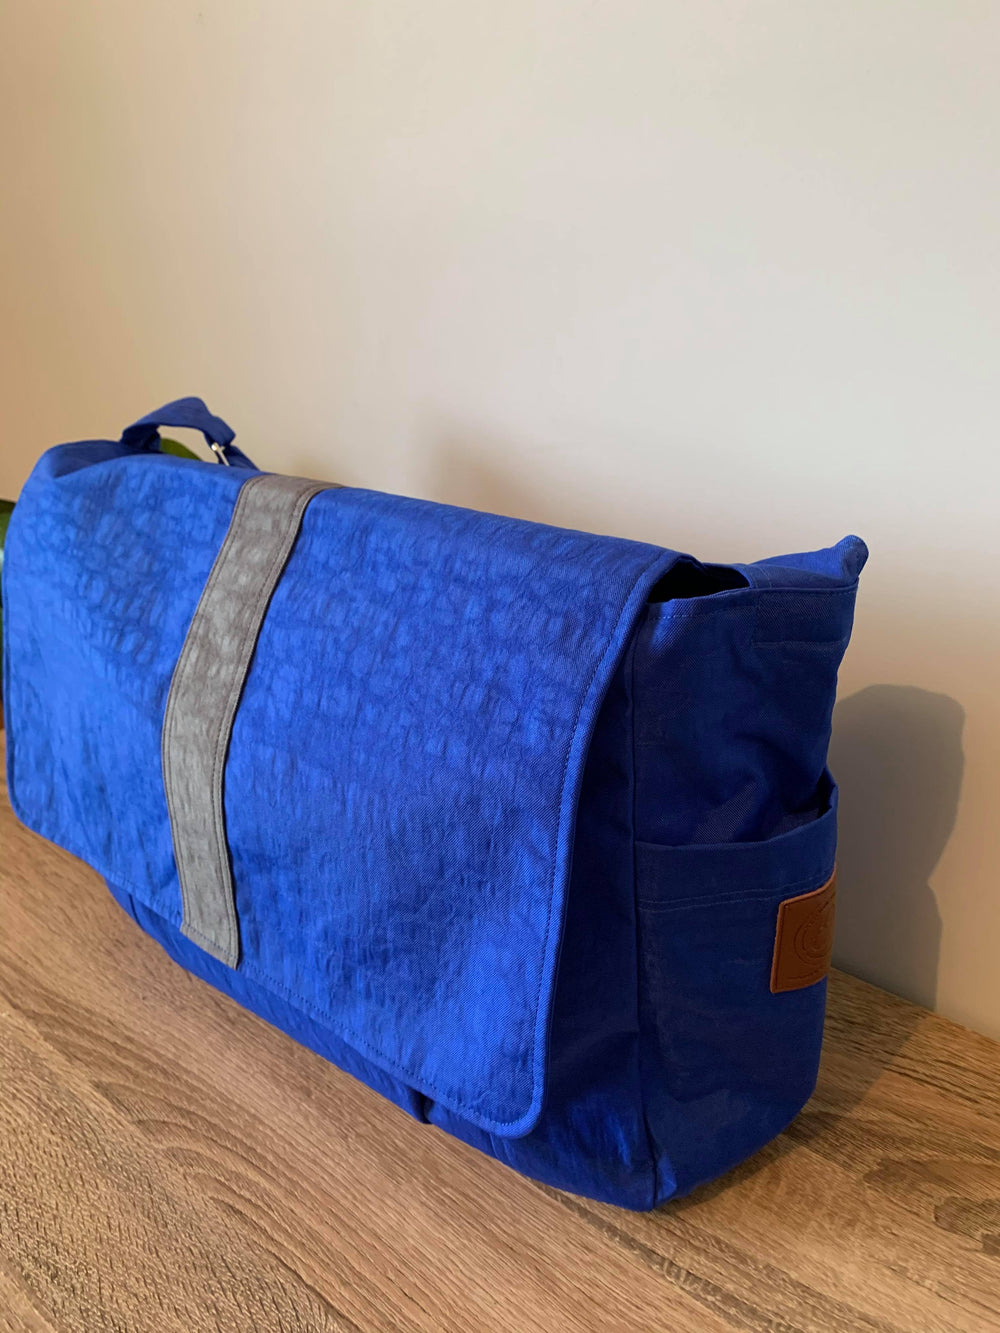 Royal Blue work bag, Messenger bag, Satchel, laptop bag,student bag, teacher bag